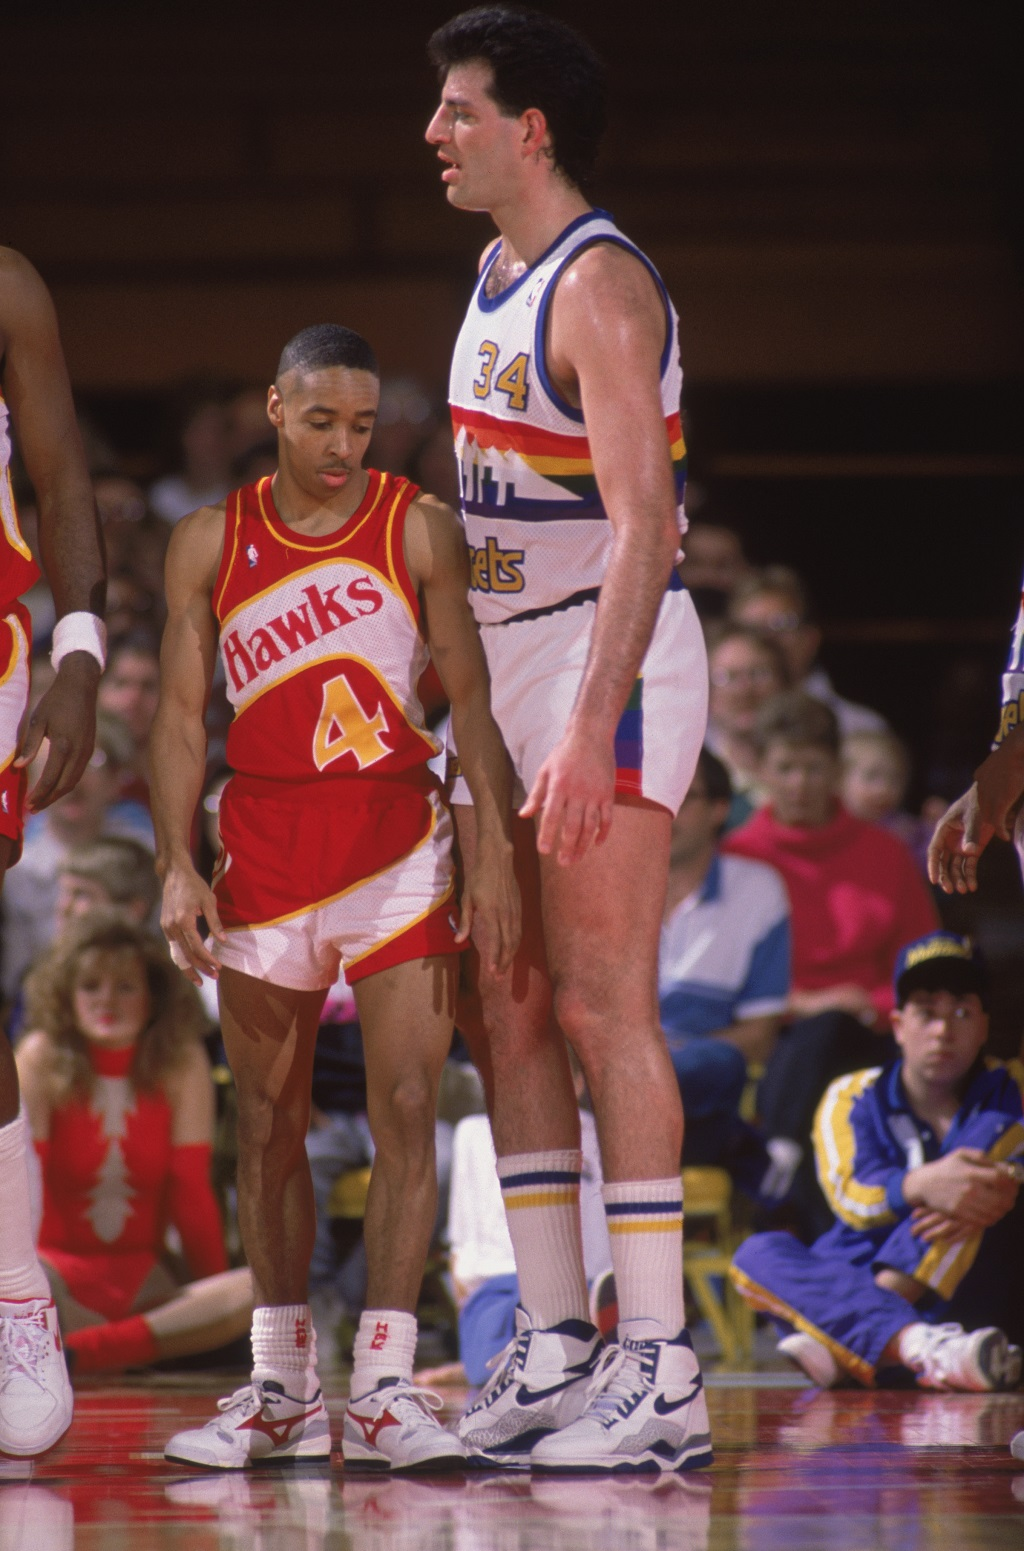 DENVER - 1989: Spud Webb #4 of the Atlanta Hawks tries to maneuver around a much larger opponent during a NBA game at McNichols Sports Arena in Denver, Colorado in 1989.(